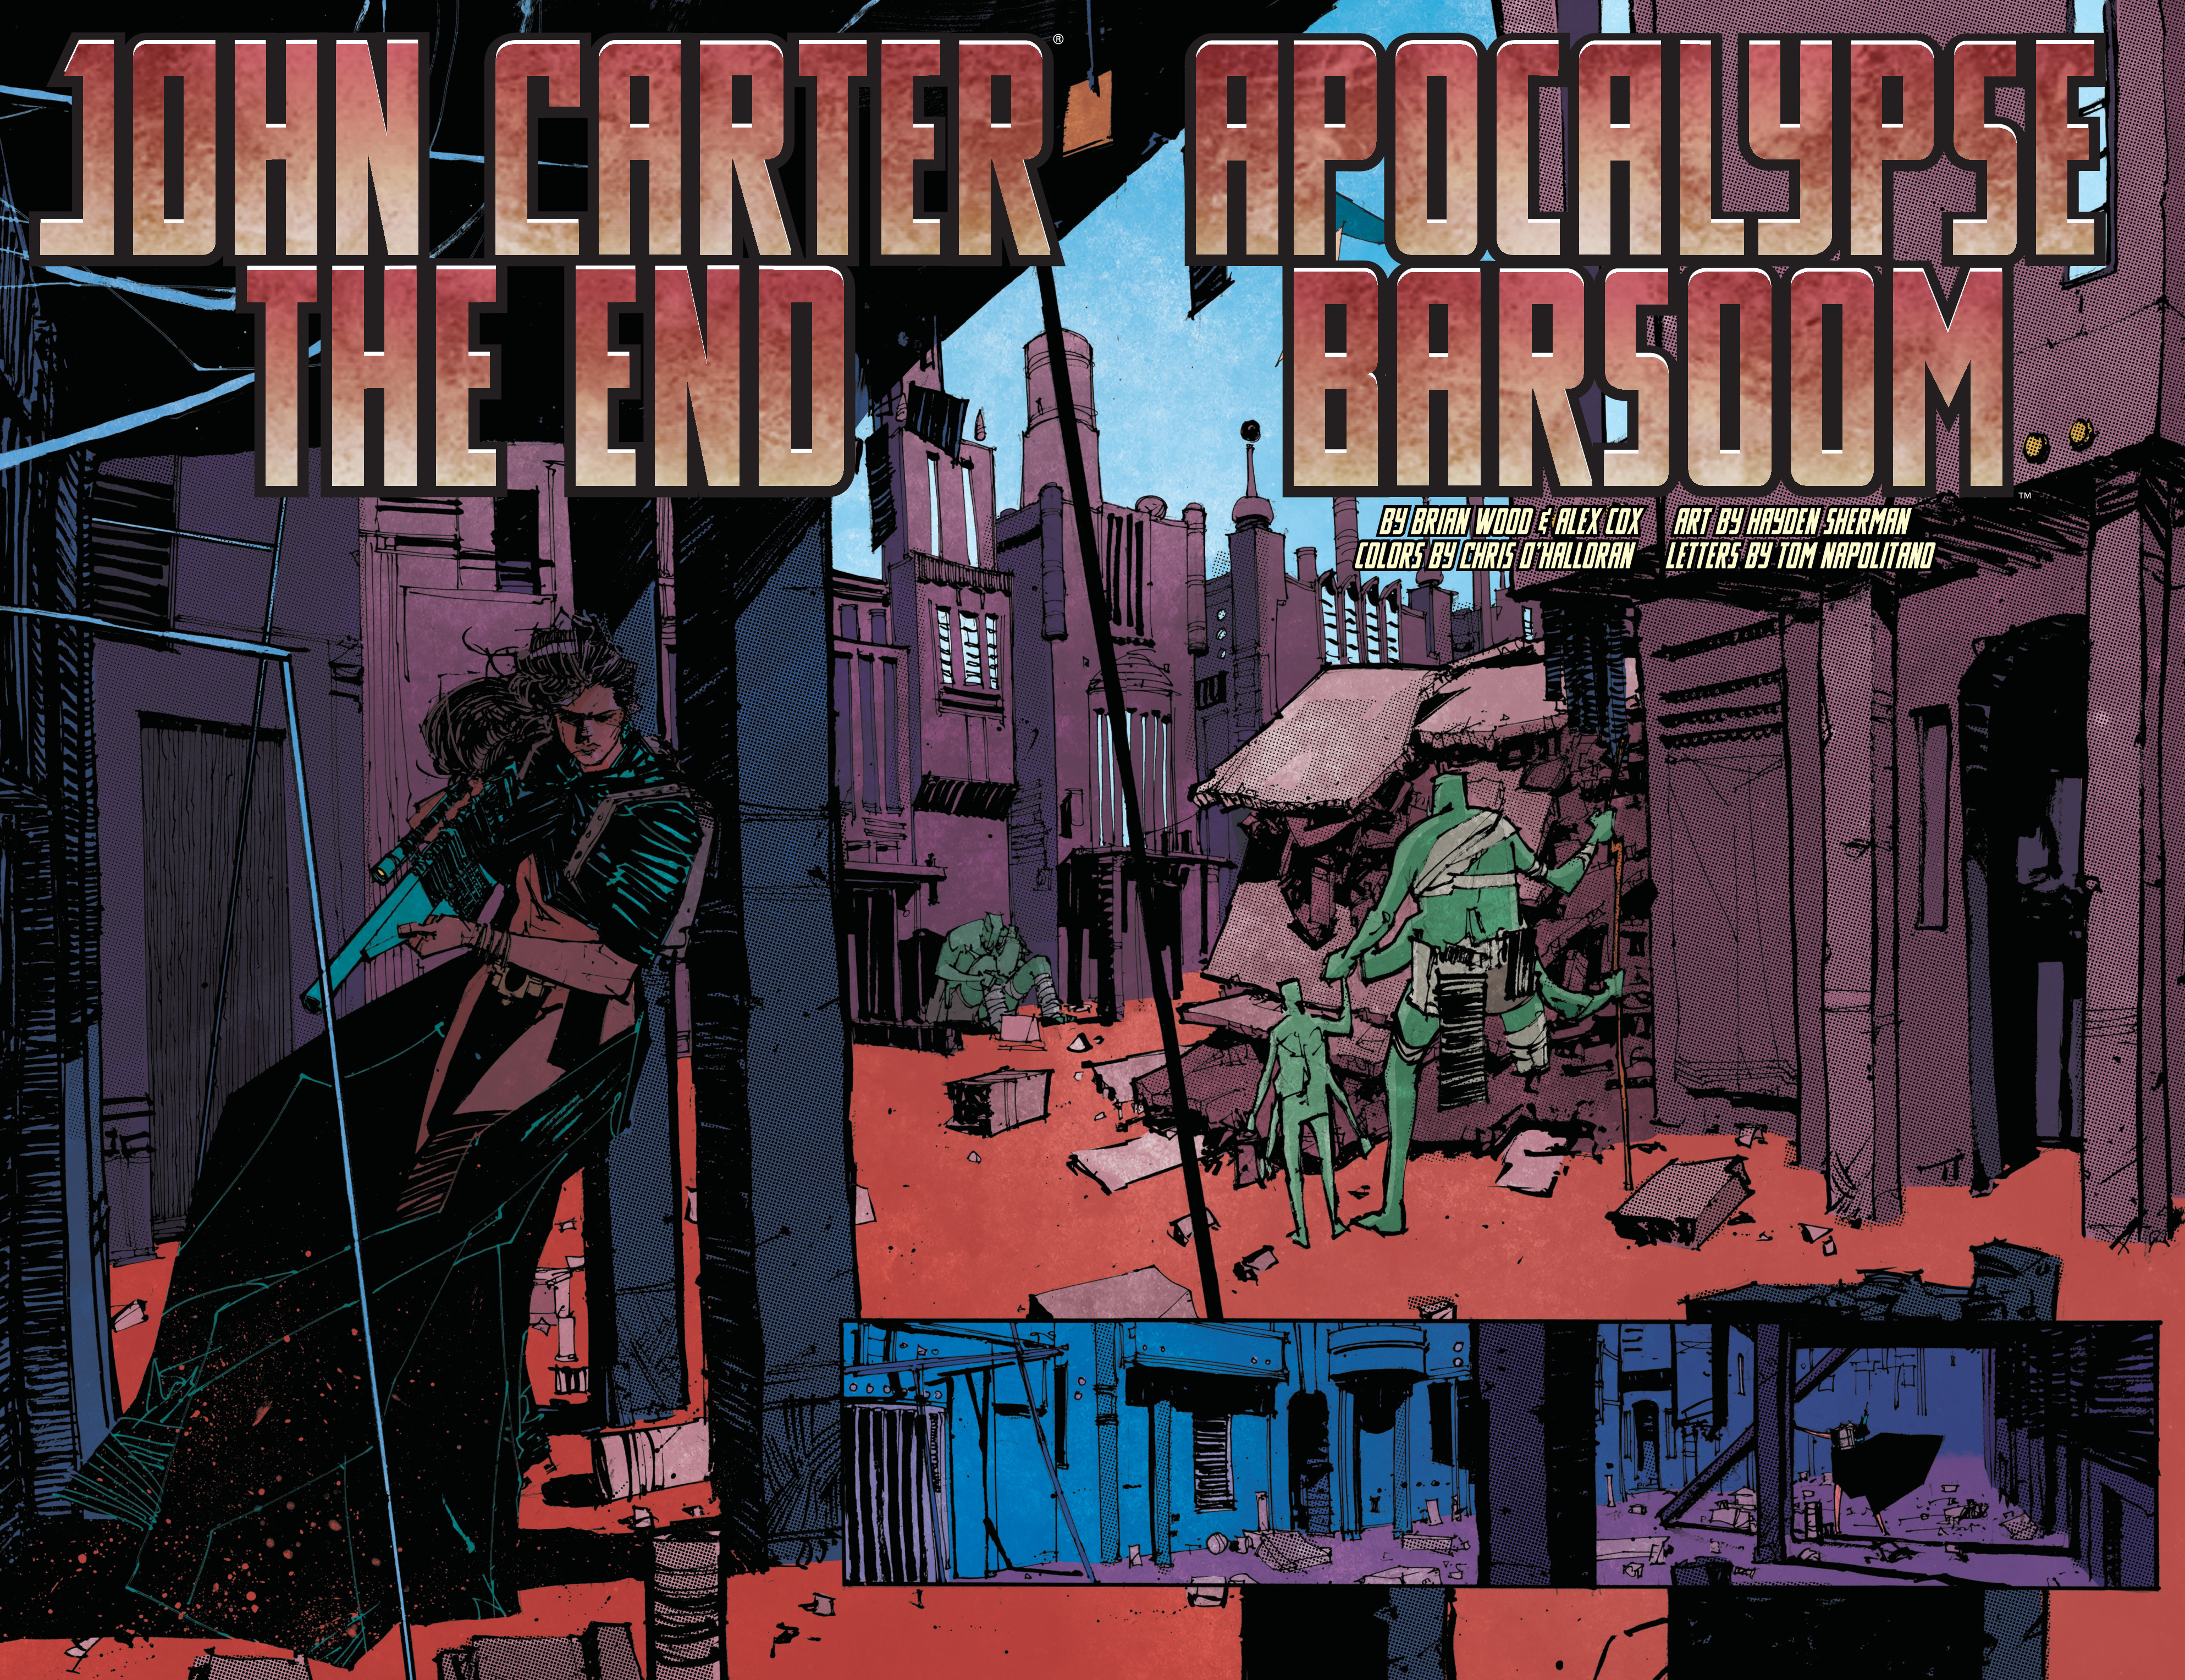 Read online John Carter: The End comic -  Issue #2 - 5